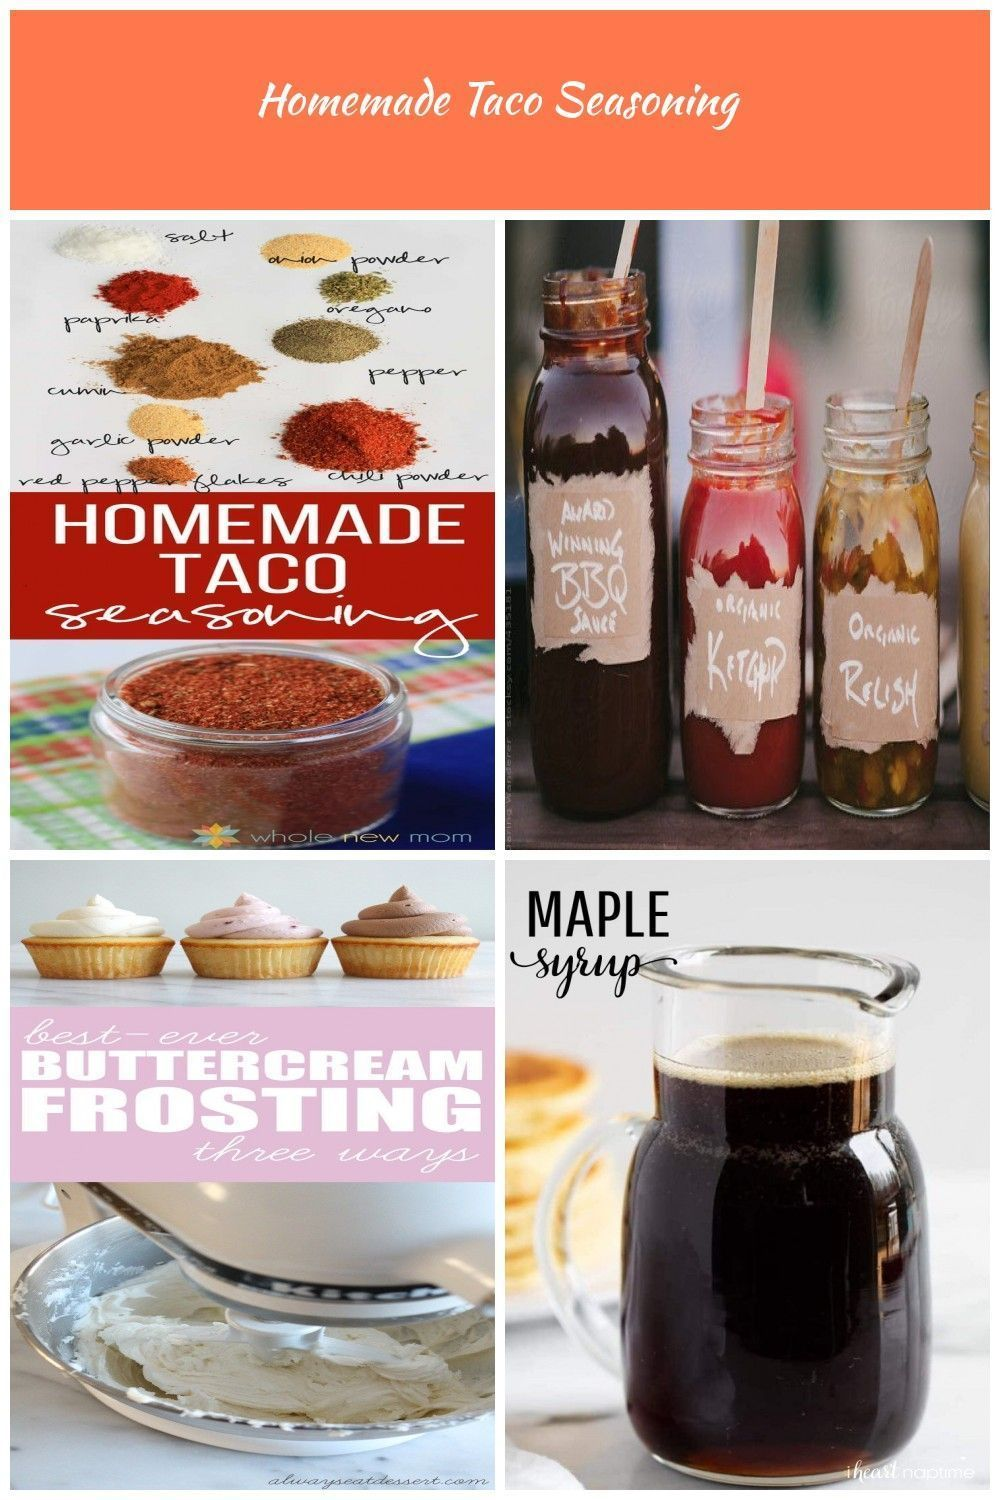 Never buy Taco Seasoning Again! This Homemade Taco Seasoning is easy to make, tastes great (on more than just tacos!) and has none of the fillers of the store bought version | DIY taco seasoning recipe | easy taco seasoning recipe | homemade taco seasoning || Whole New Mom #tacoseasoning Condiments Homemade Taco Seasoning #diytacoseasoning Never buy Taco Seasoning Again! This Homemade Taco Seasoning is easy to make, tastes great (on more than just tacos!) and has none of the fillers of the store #diytacoseasoning